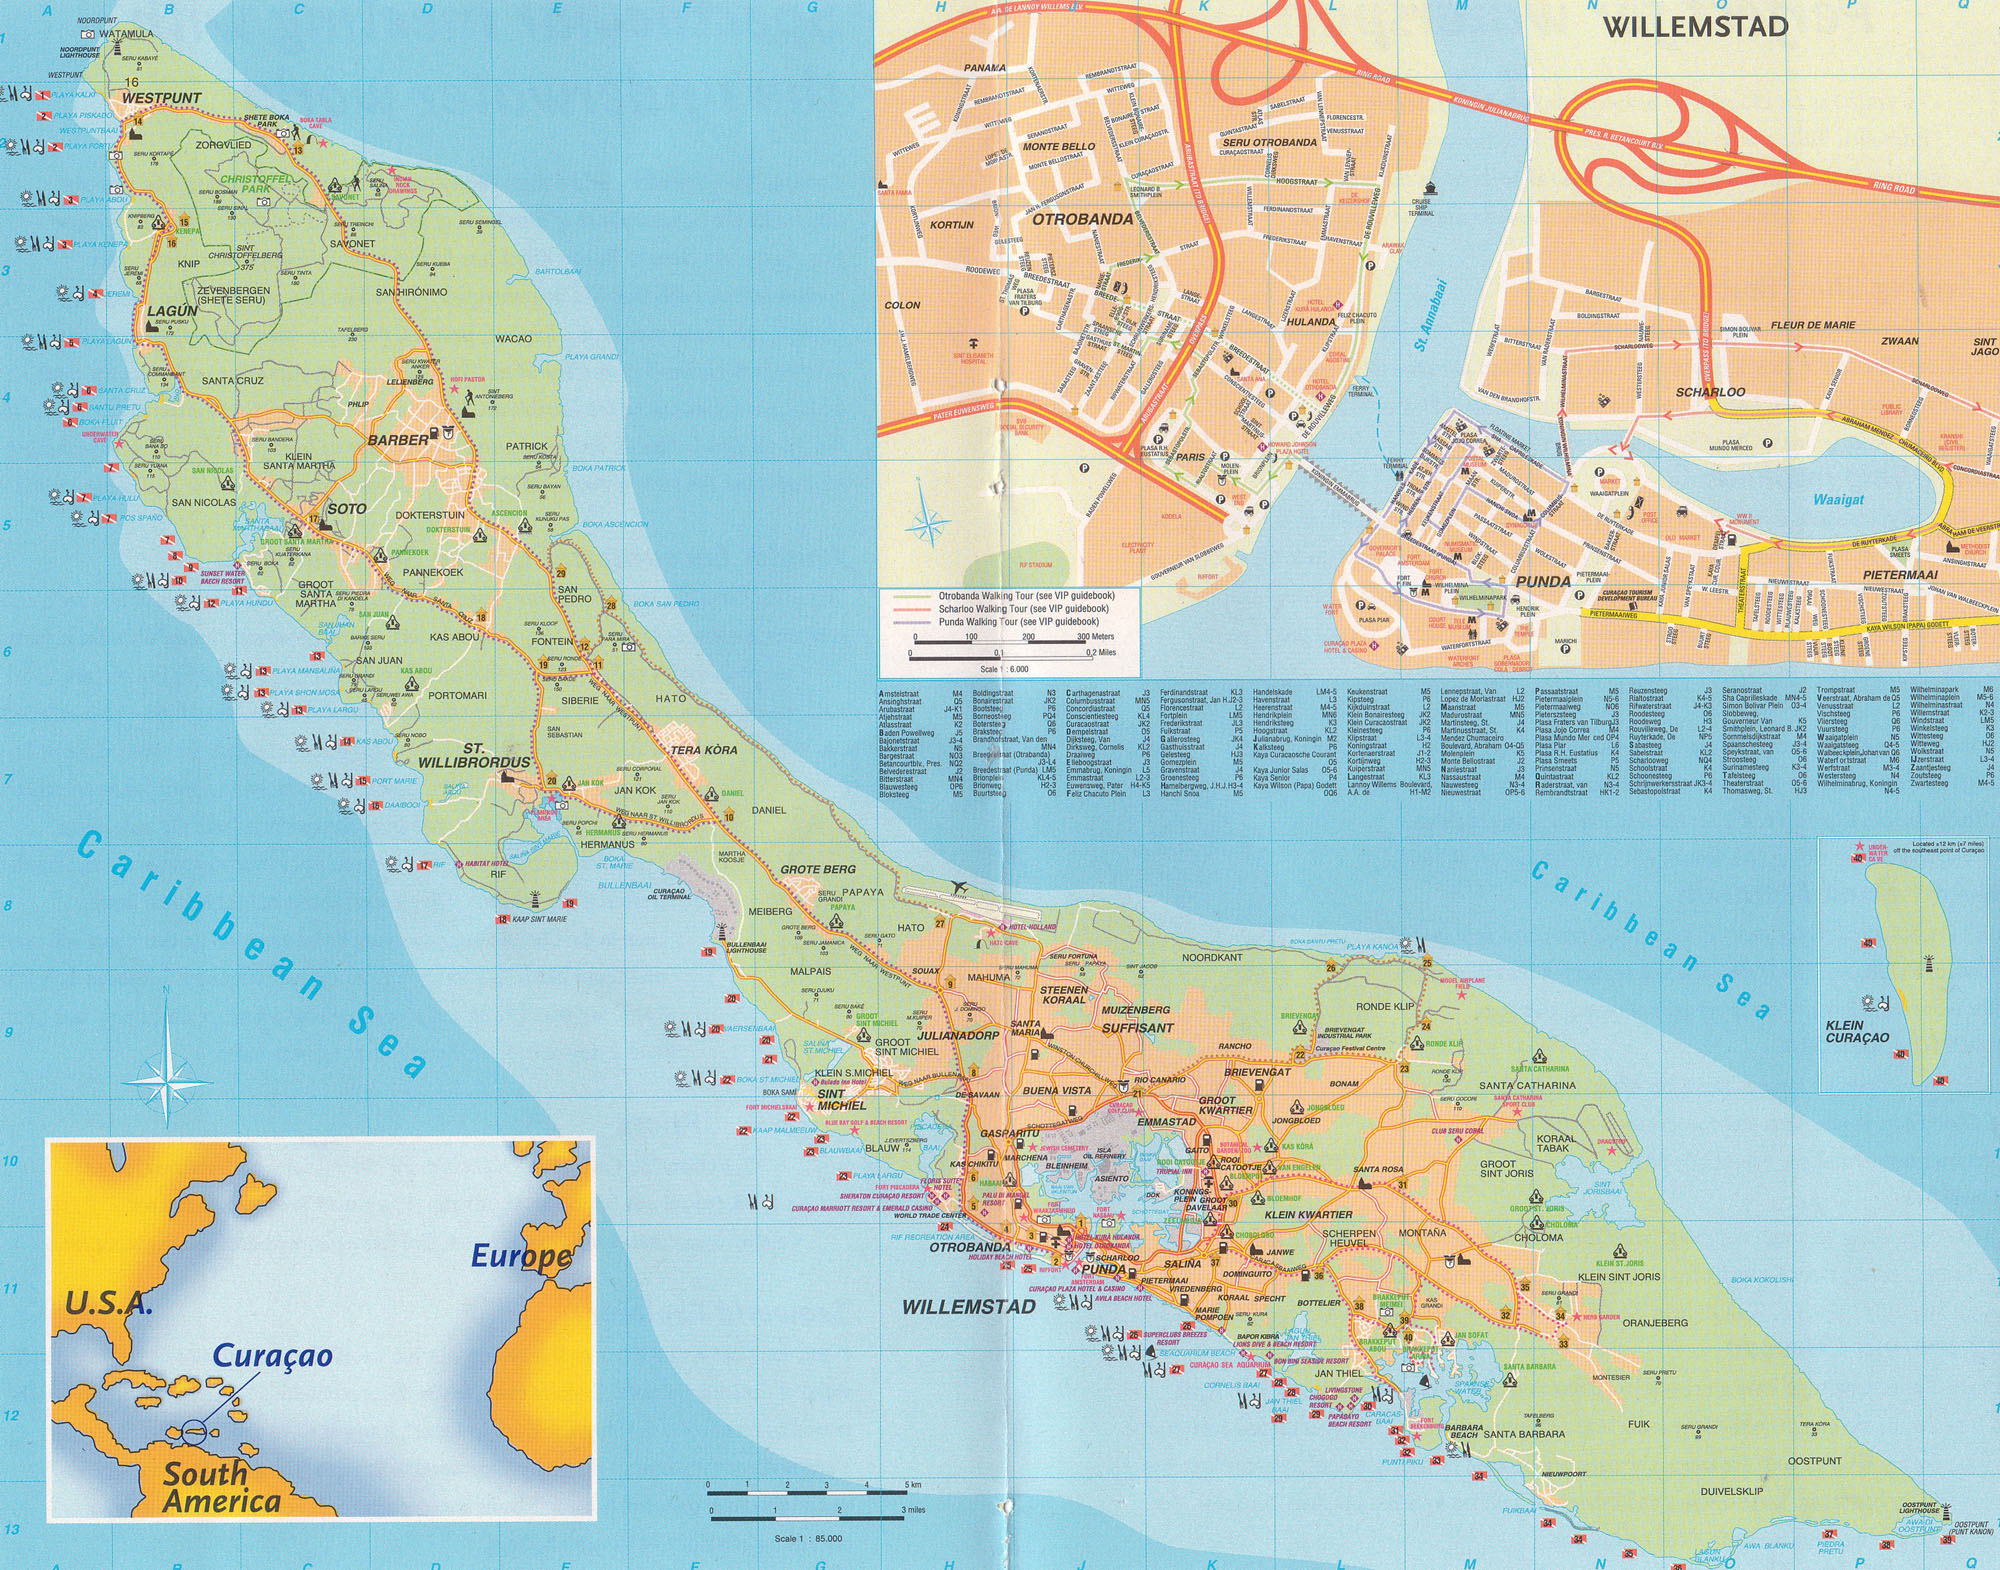 Large detailed road map of curacao island netherlands antilles large detailed road map of curacao island netherlands antilles curacao island netherlands antilles large detailed road map publicscrutiny Images